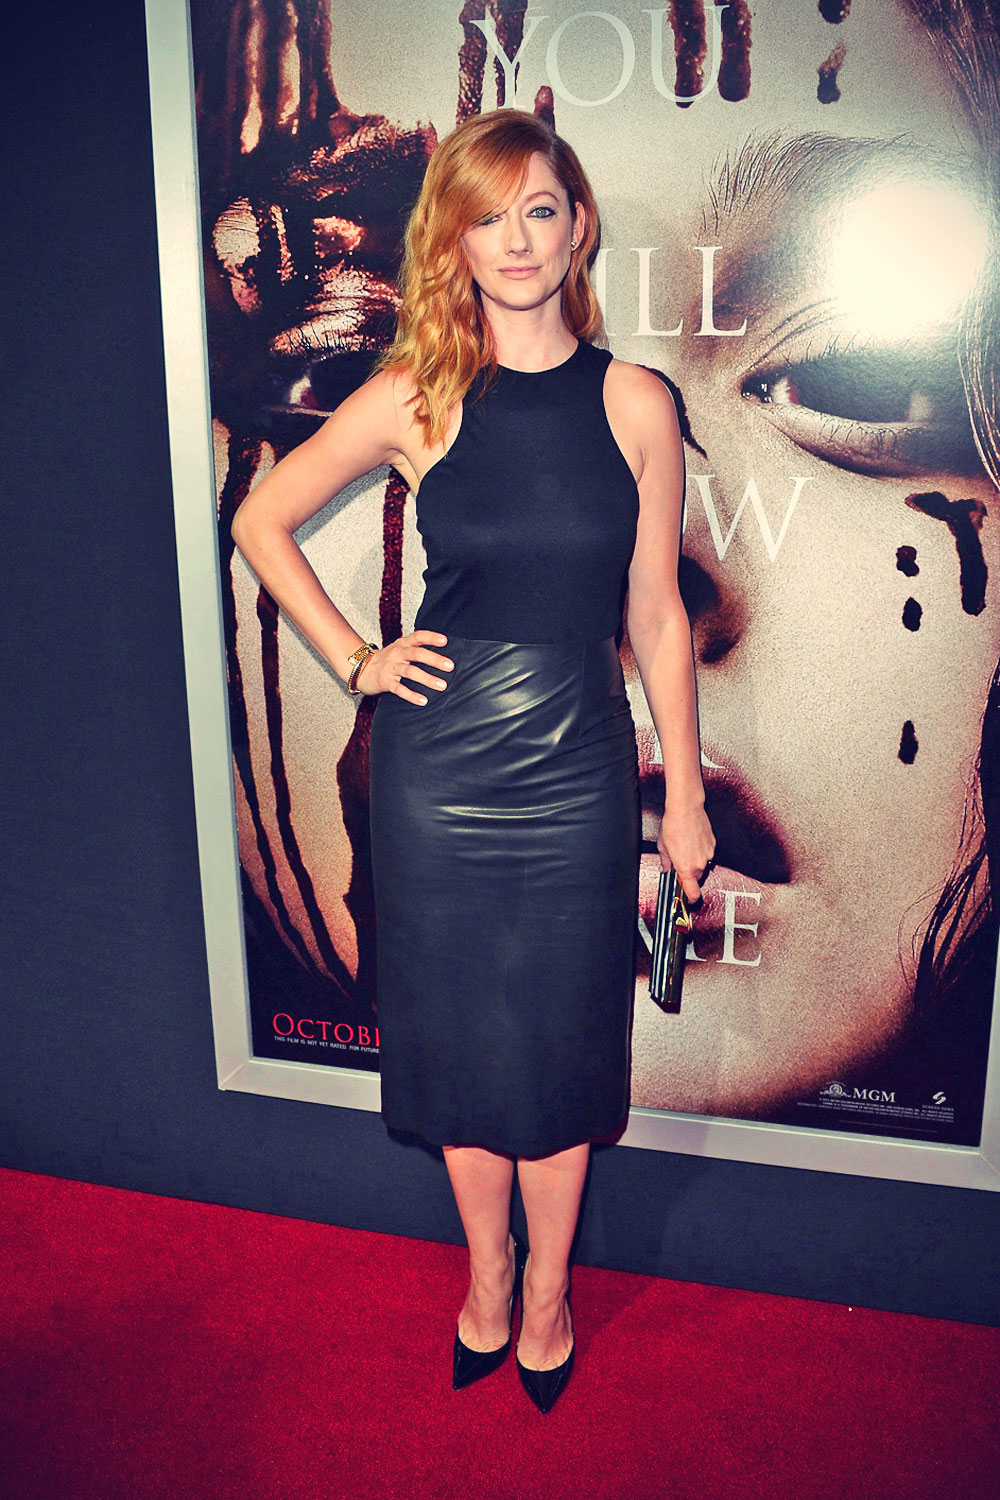 Judy Greer attends Premiere of Carrie